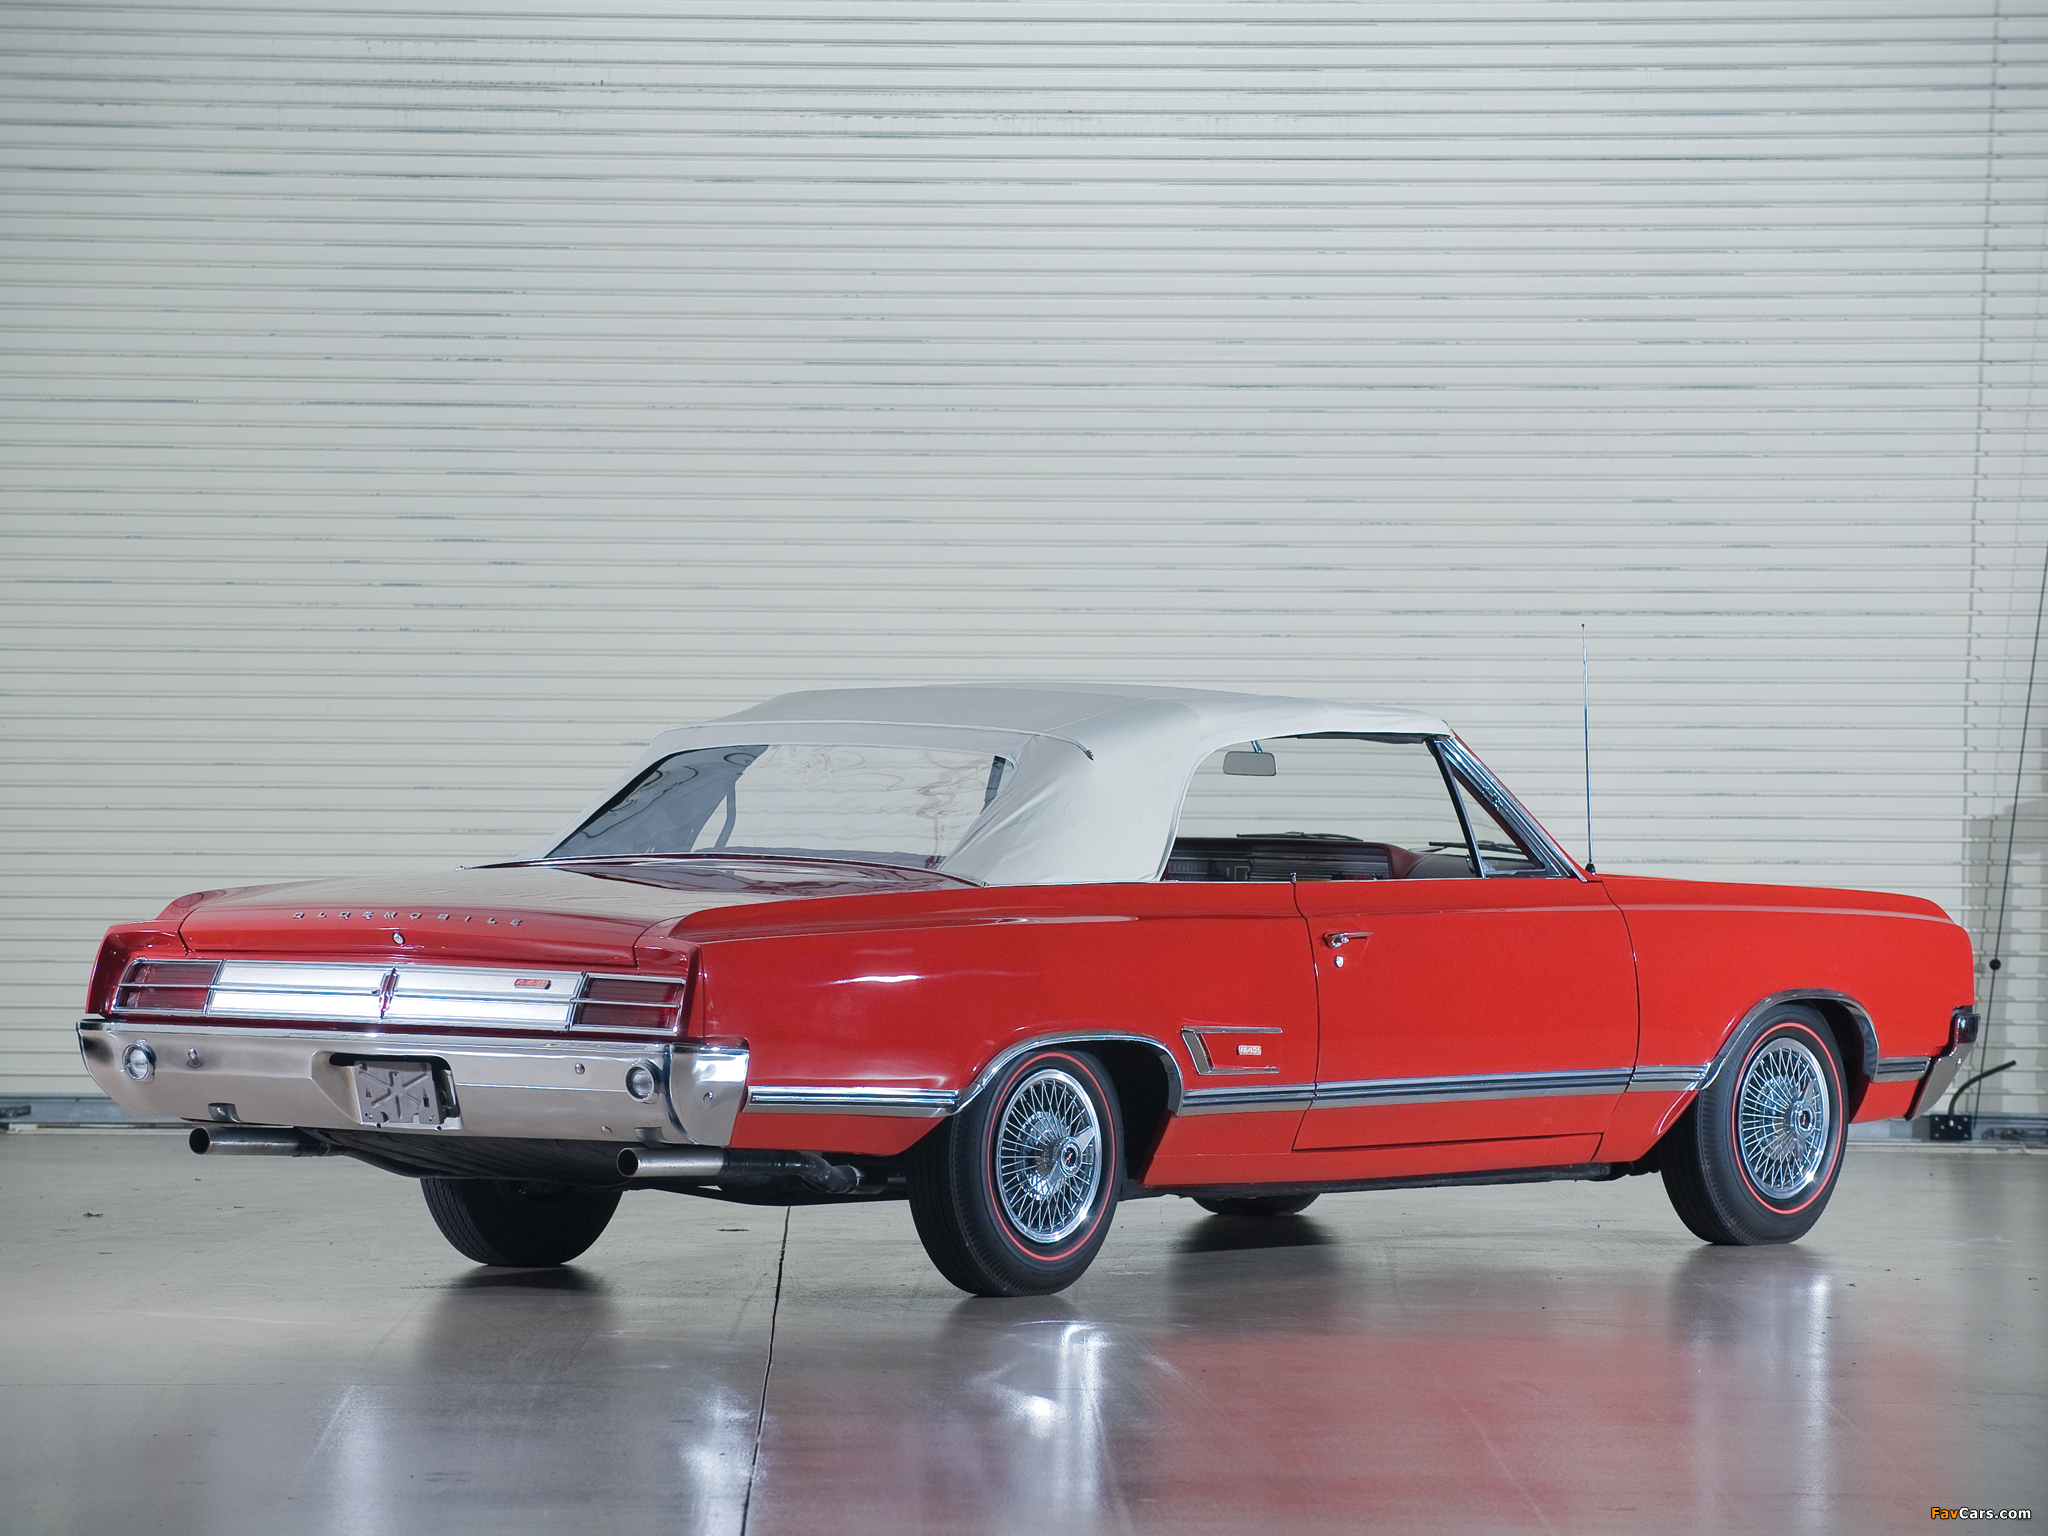 Oldsmobile Cutlass 442 Convertible 1965 images (2048 x 1536)